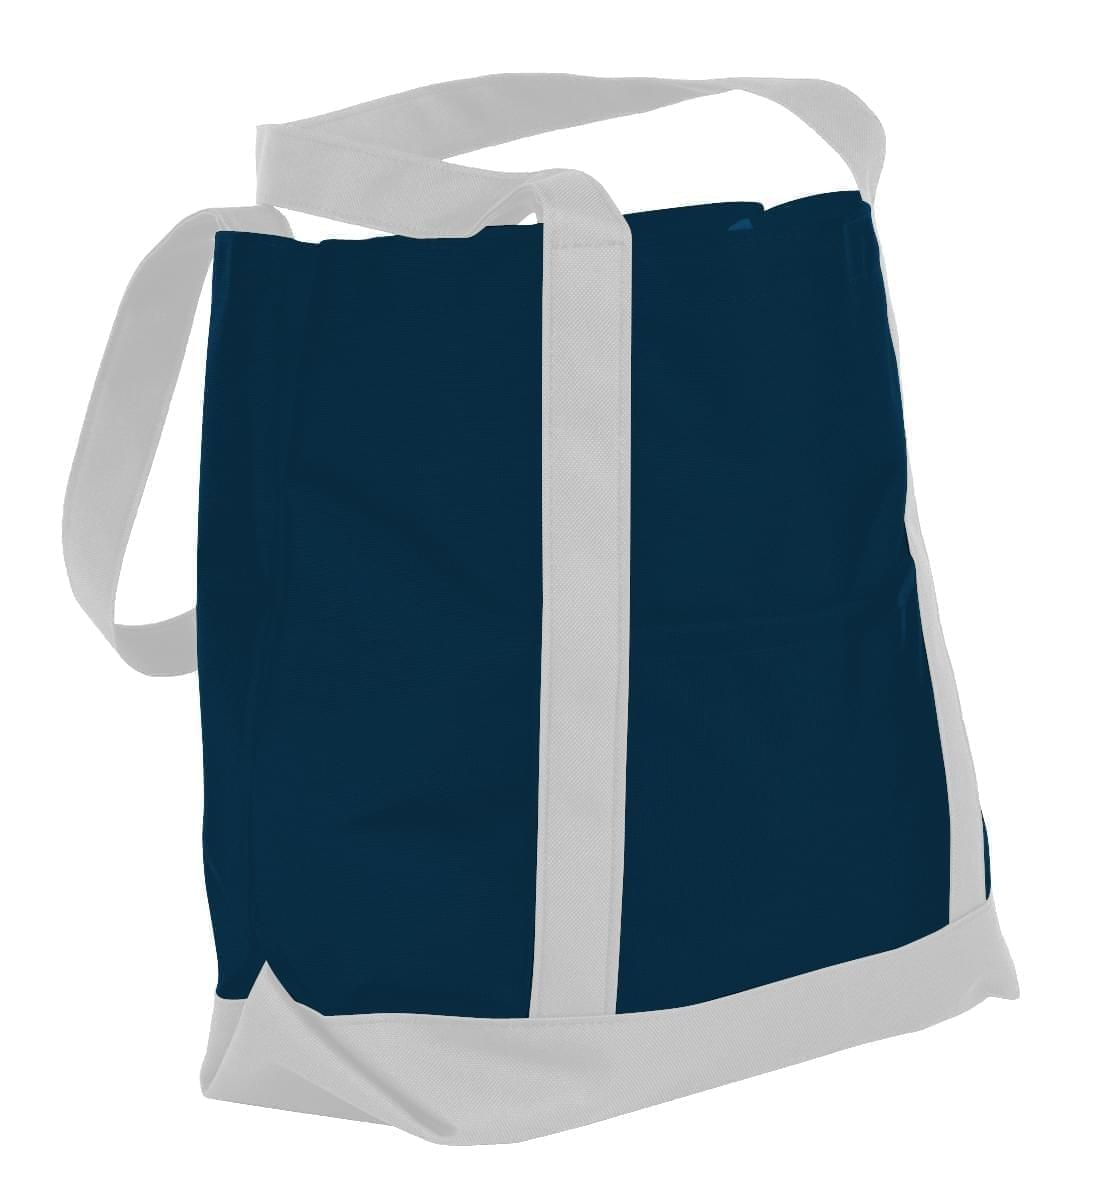 USA Made Nylon Poly Boat Tote Bags, Navy-White, XAACL1UAWP